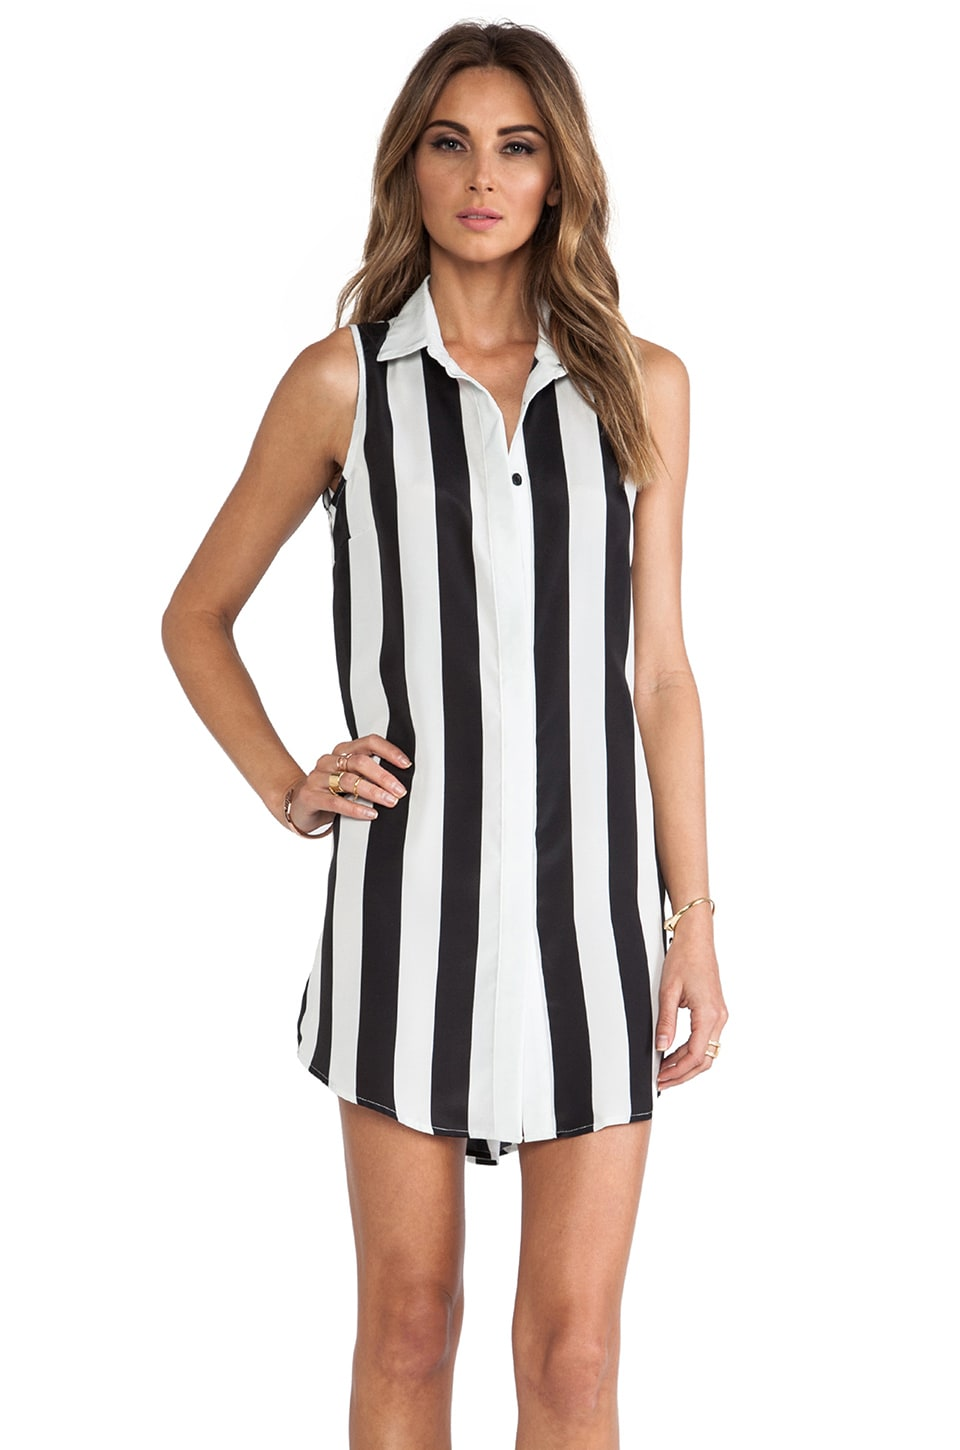 ELLIATT Aspect Shirt Dresse in Black & White Strip